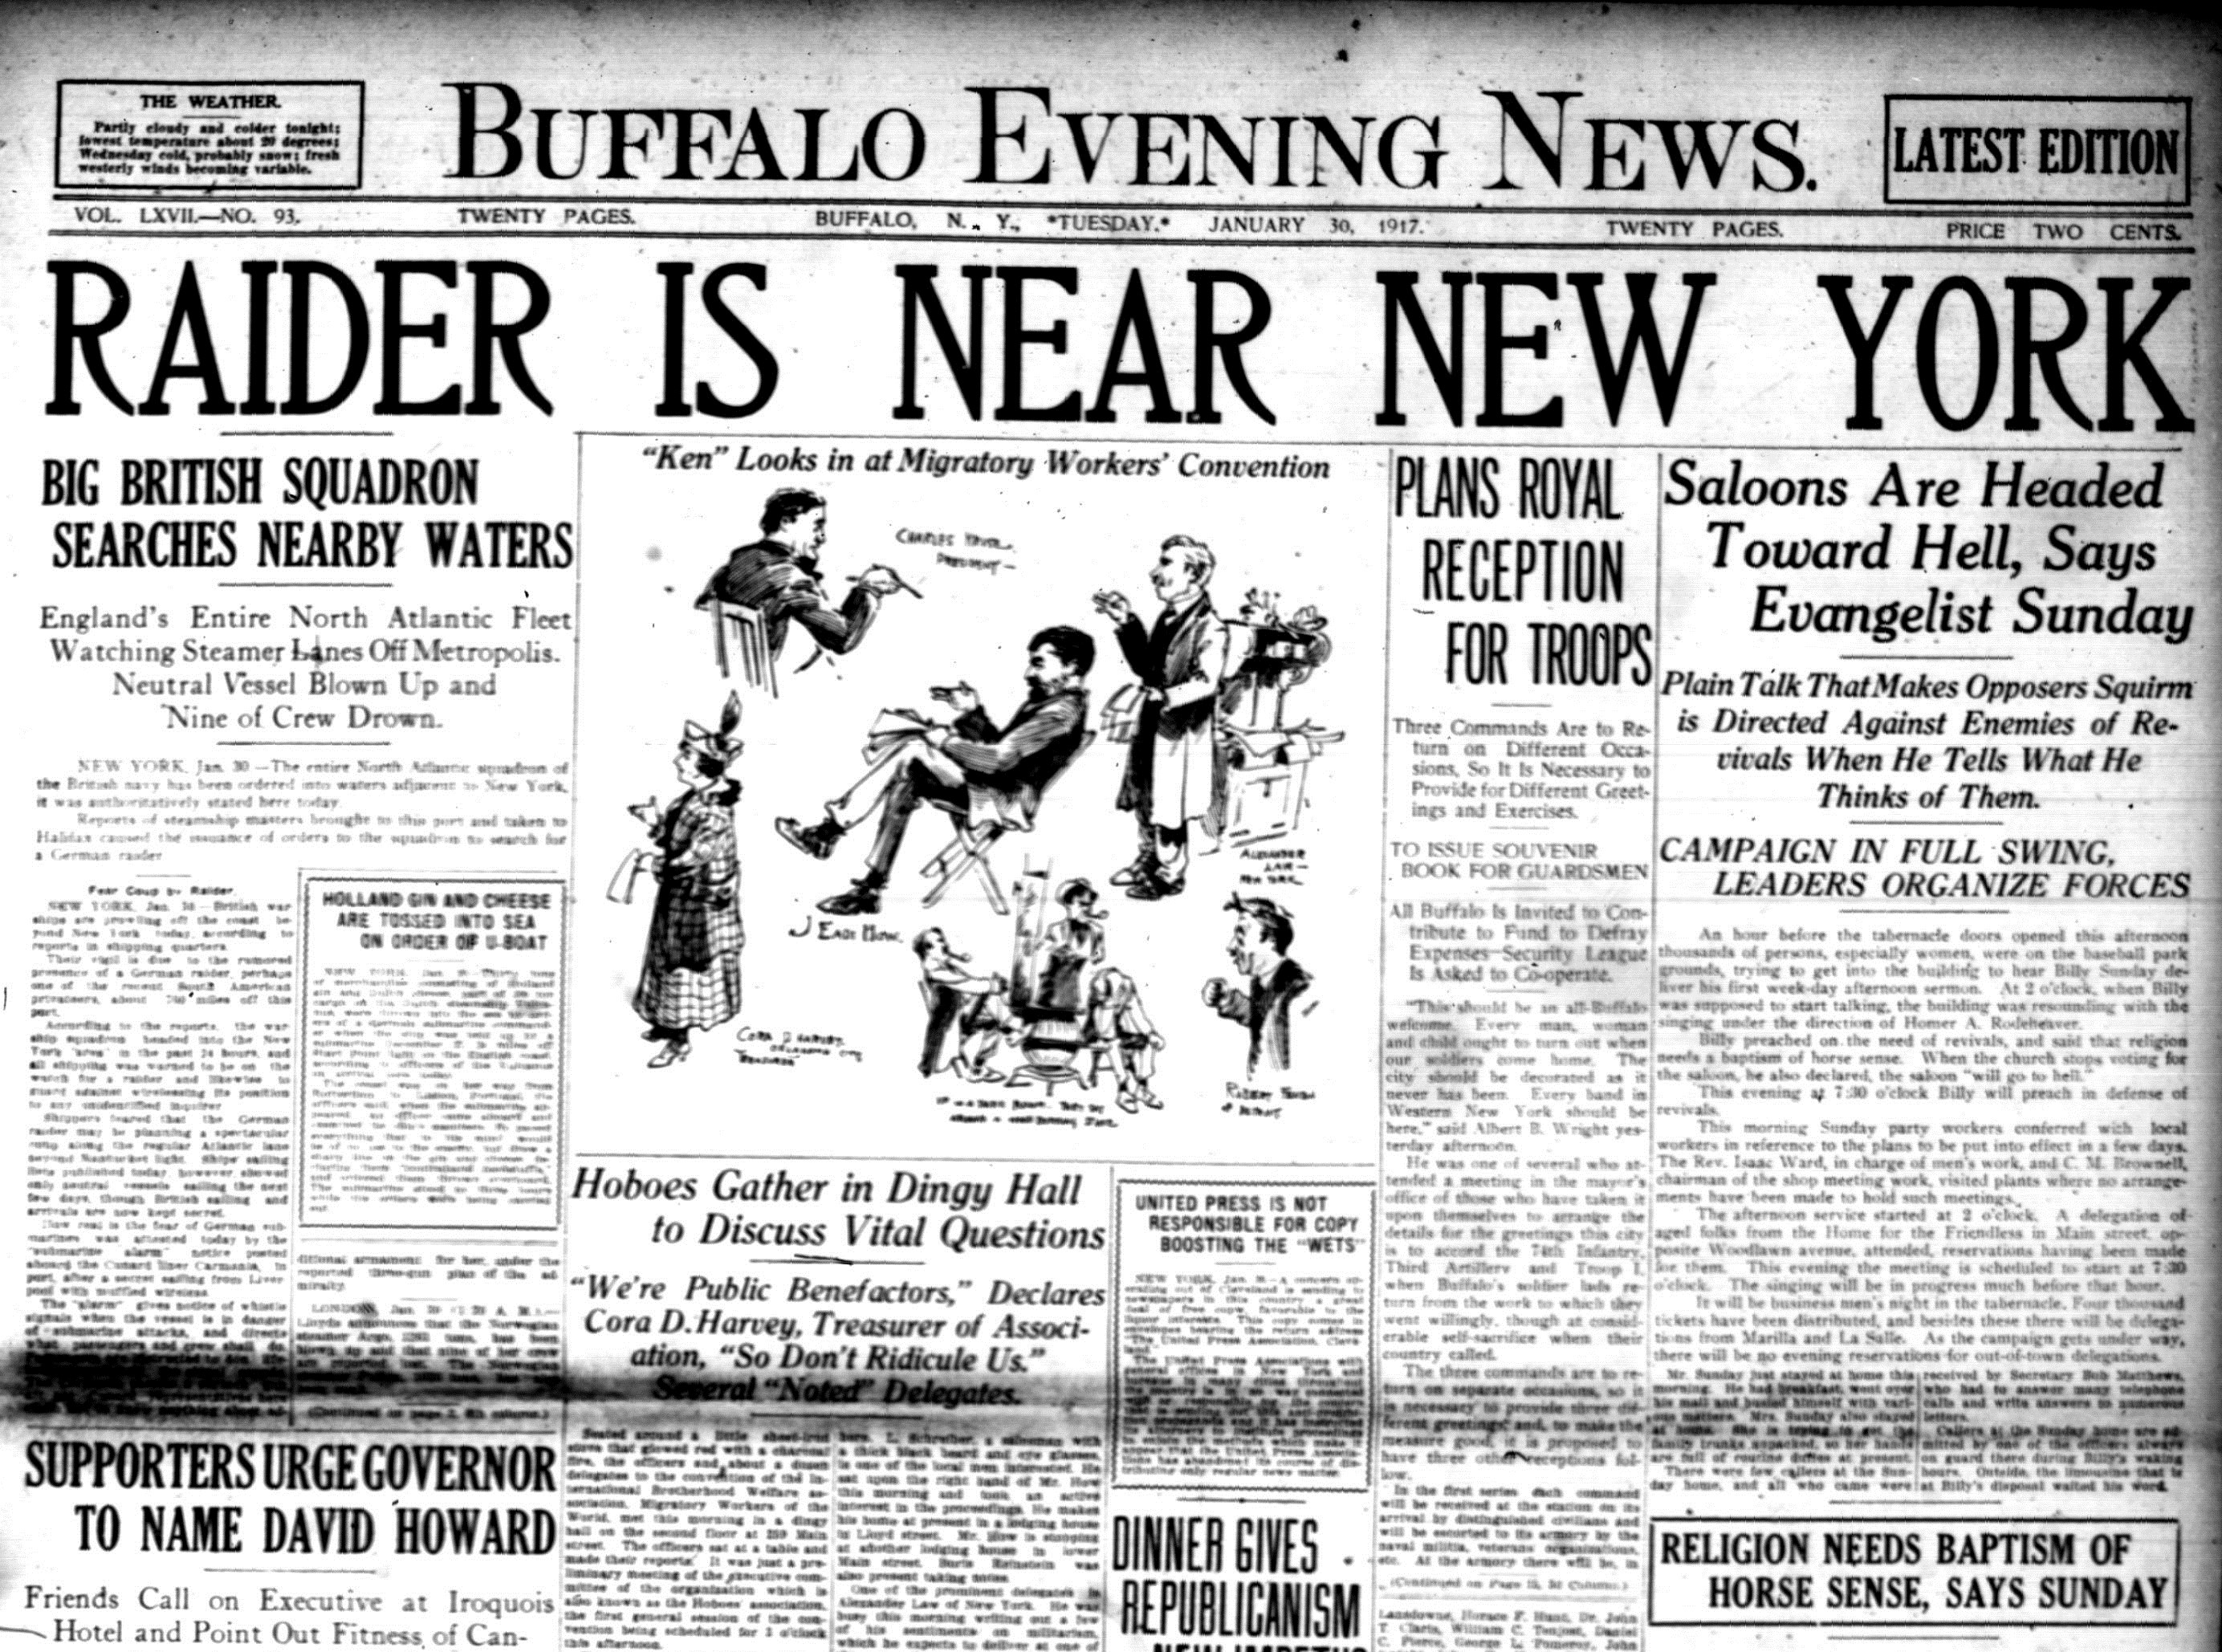 Front page, Jan. 30, 1917: A gathering of 'hoboes' and pheasants near the Pierce-Arrow plant